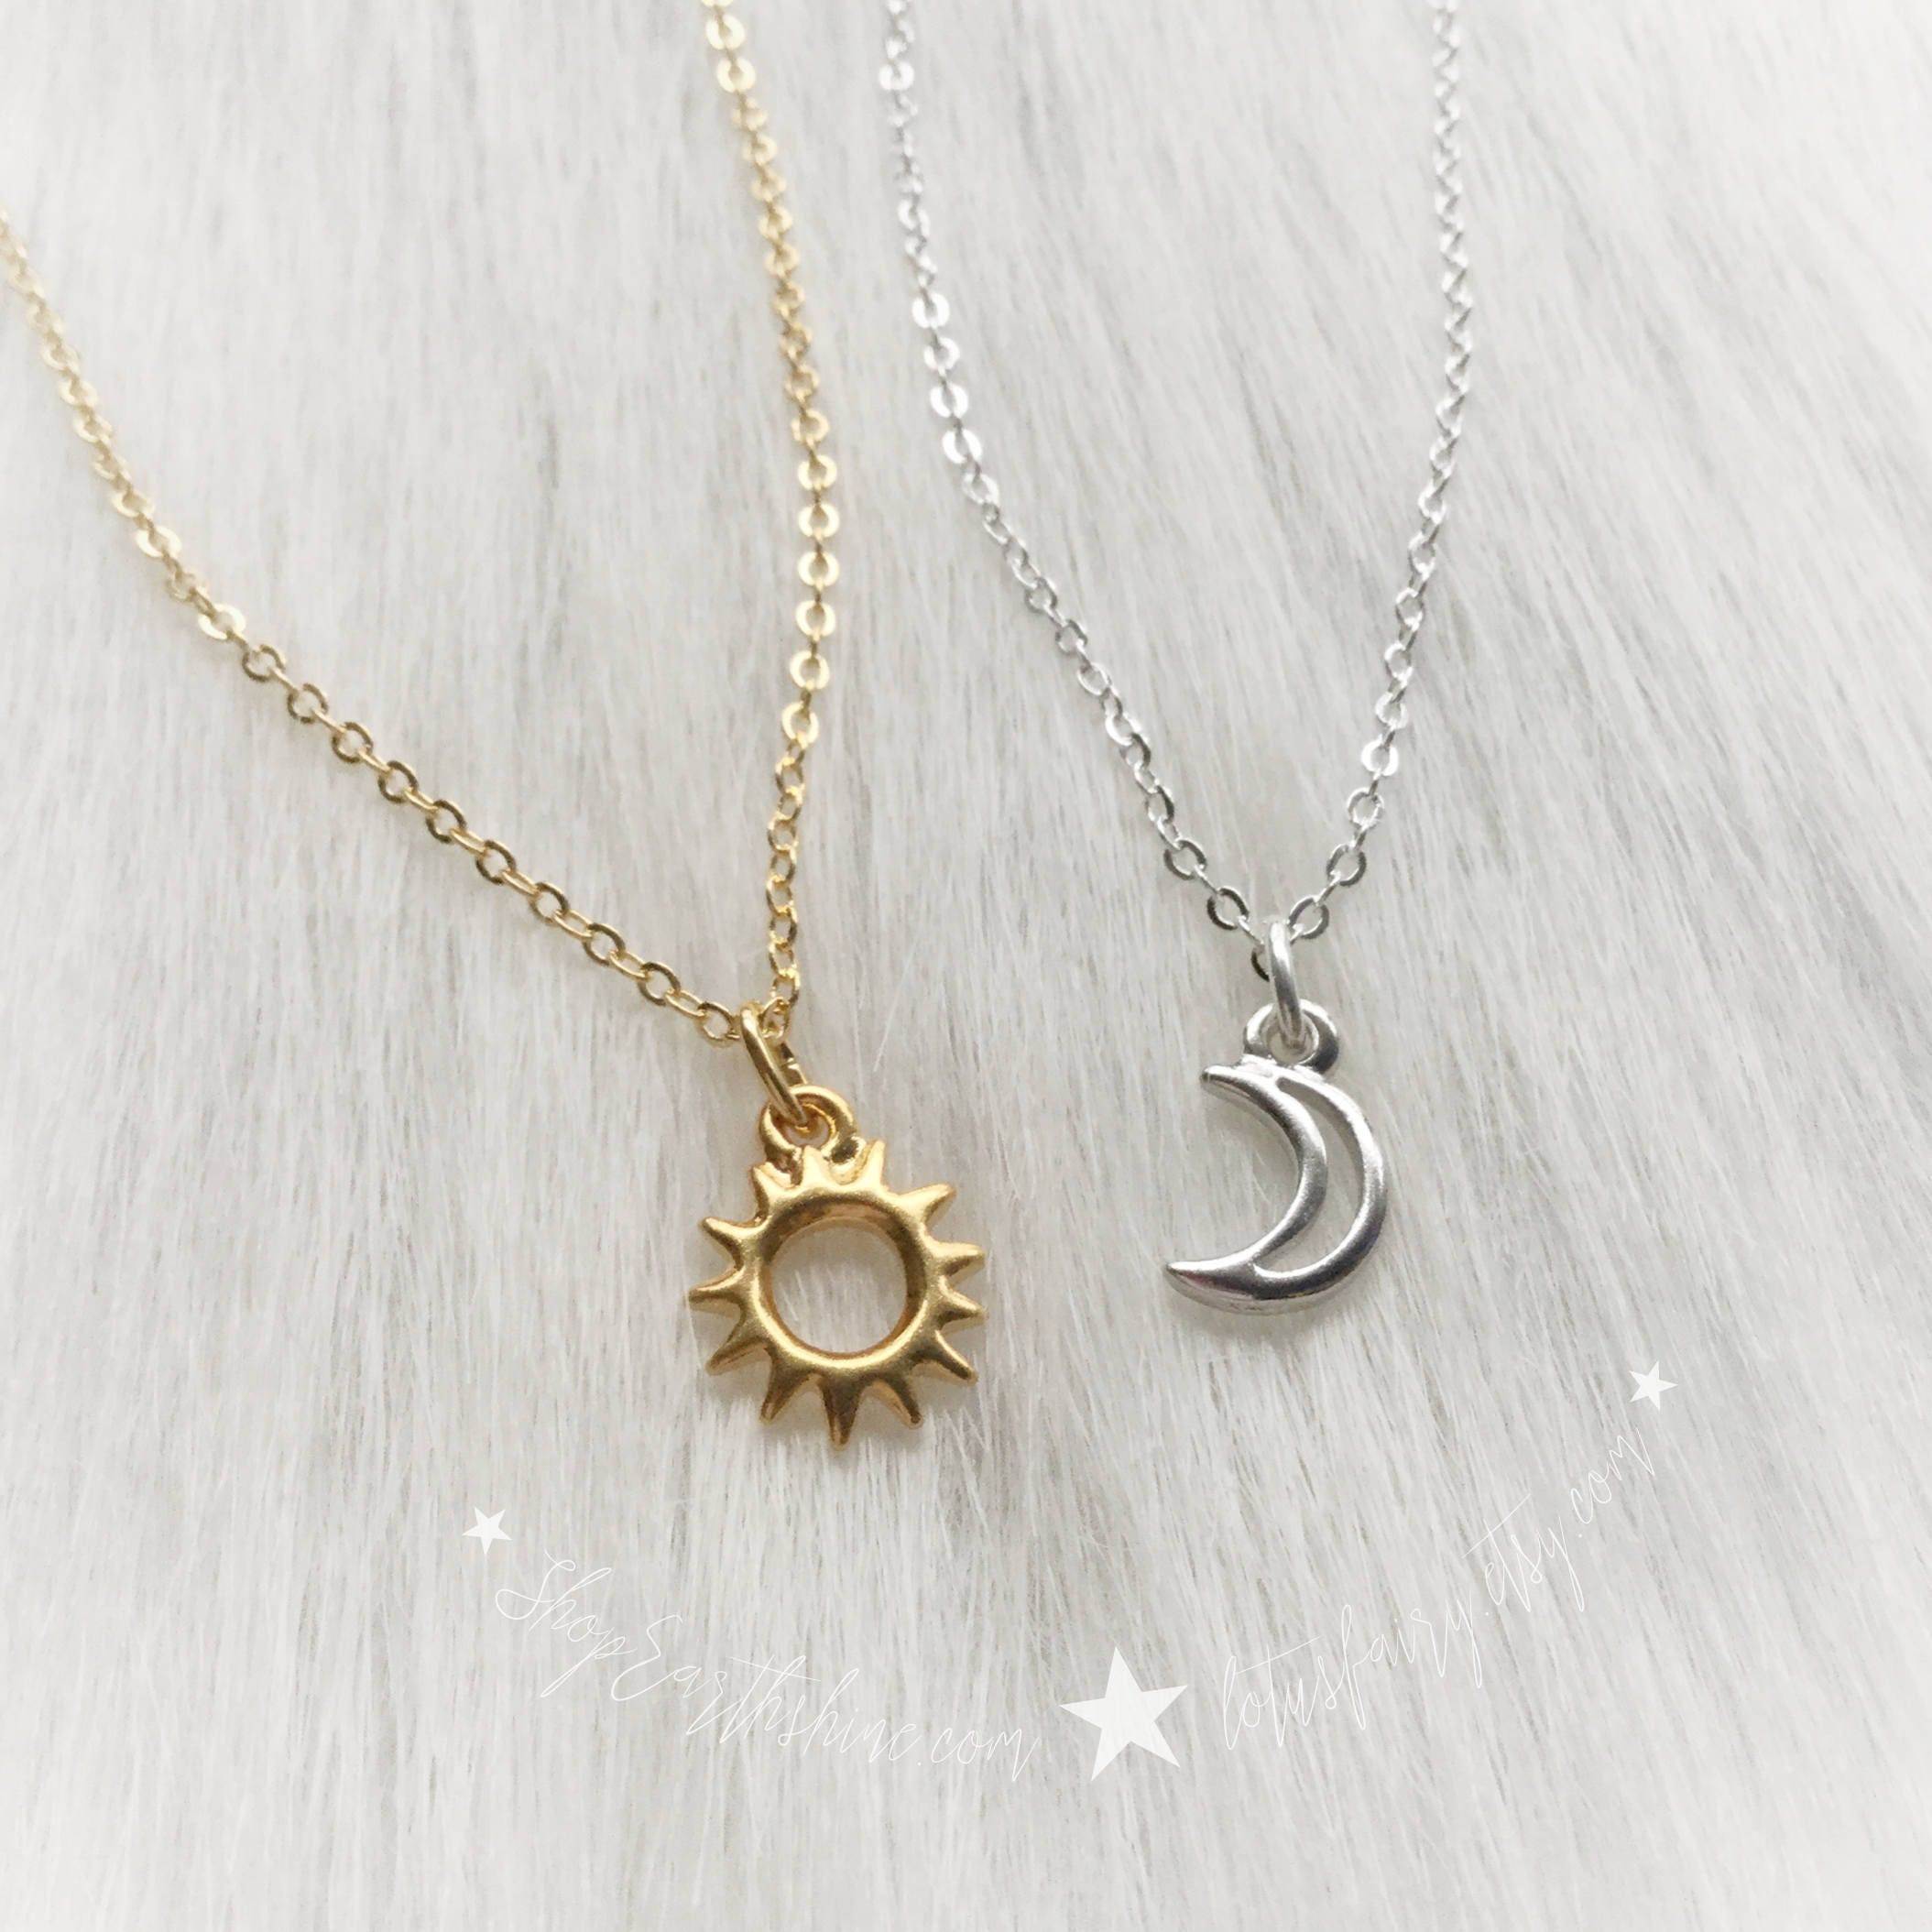 pendant necklaces and necklace us claire sun friends moon best amp s